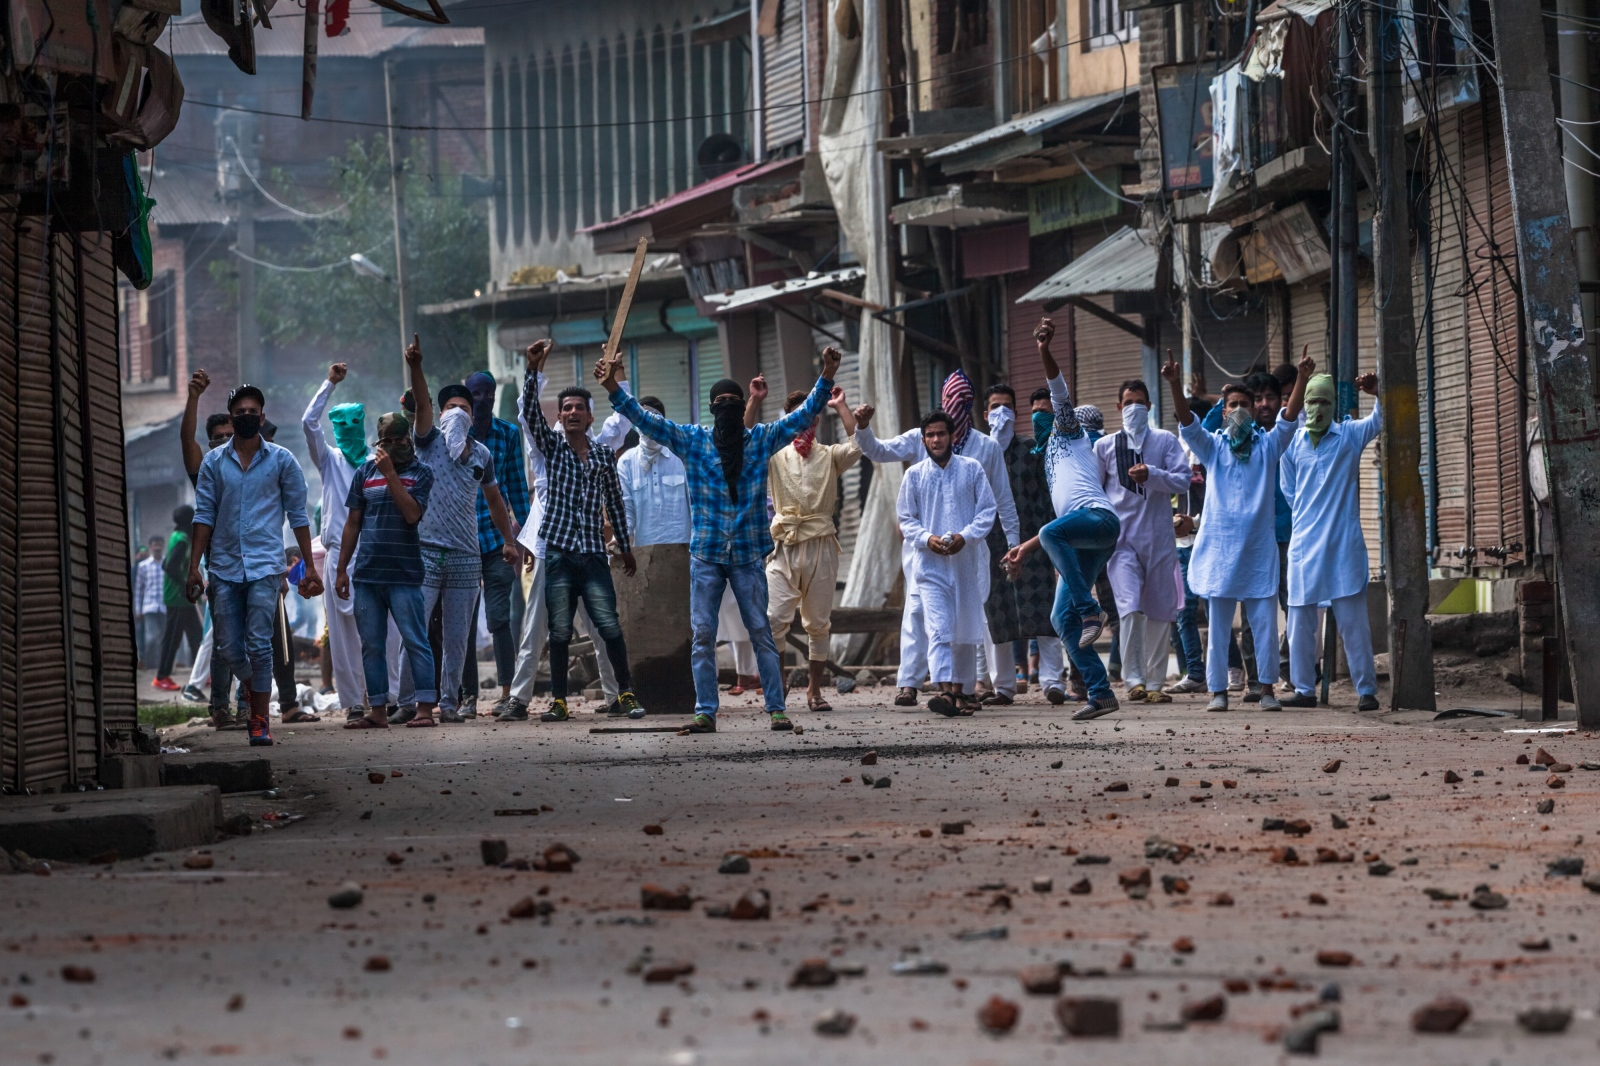 Kashmiri protesters shout slogans and throw stones during clashes with Indian Central Reserve Police Force (CRPF) and security personnel during a strict curfew on Eid-al-Adha, one of the most important religious festivals in the Muslim calendar, in the Batamloo area of Srinagar.